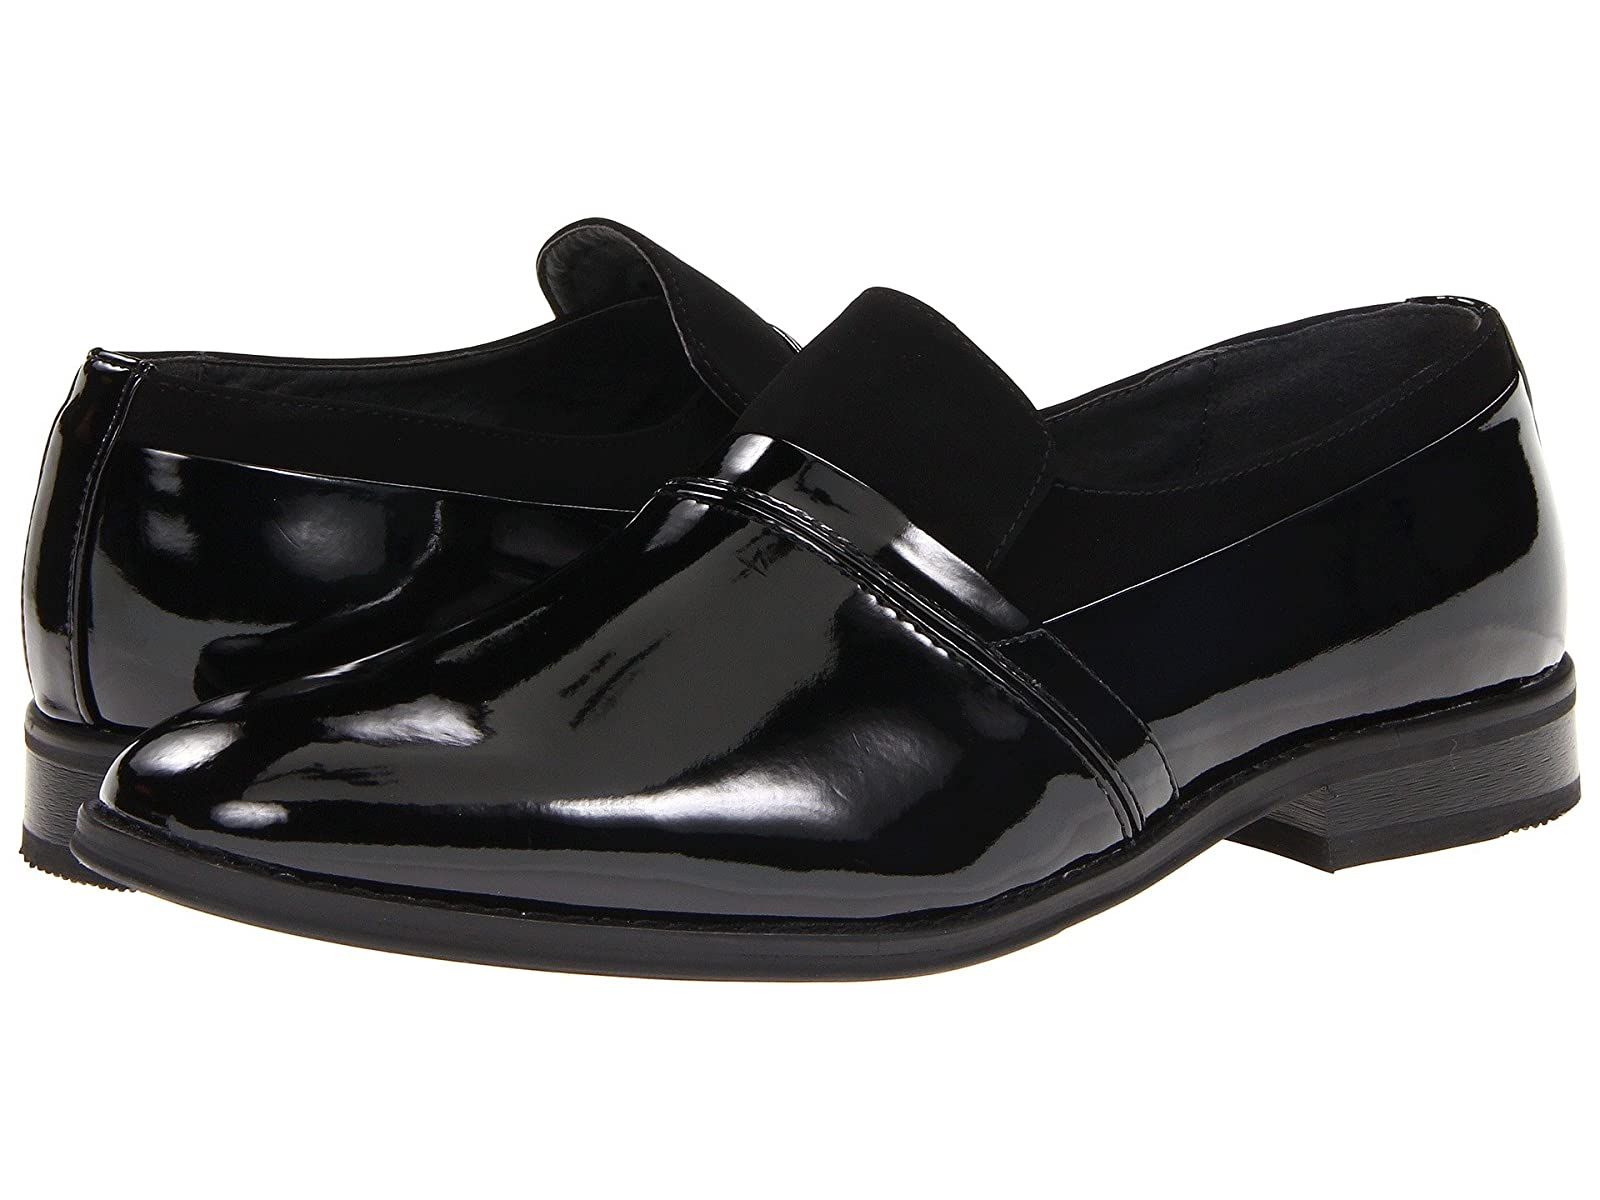 Giorgio Brutini LuxoreAtmospheric grades have affordable shoes